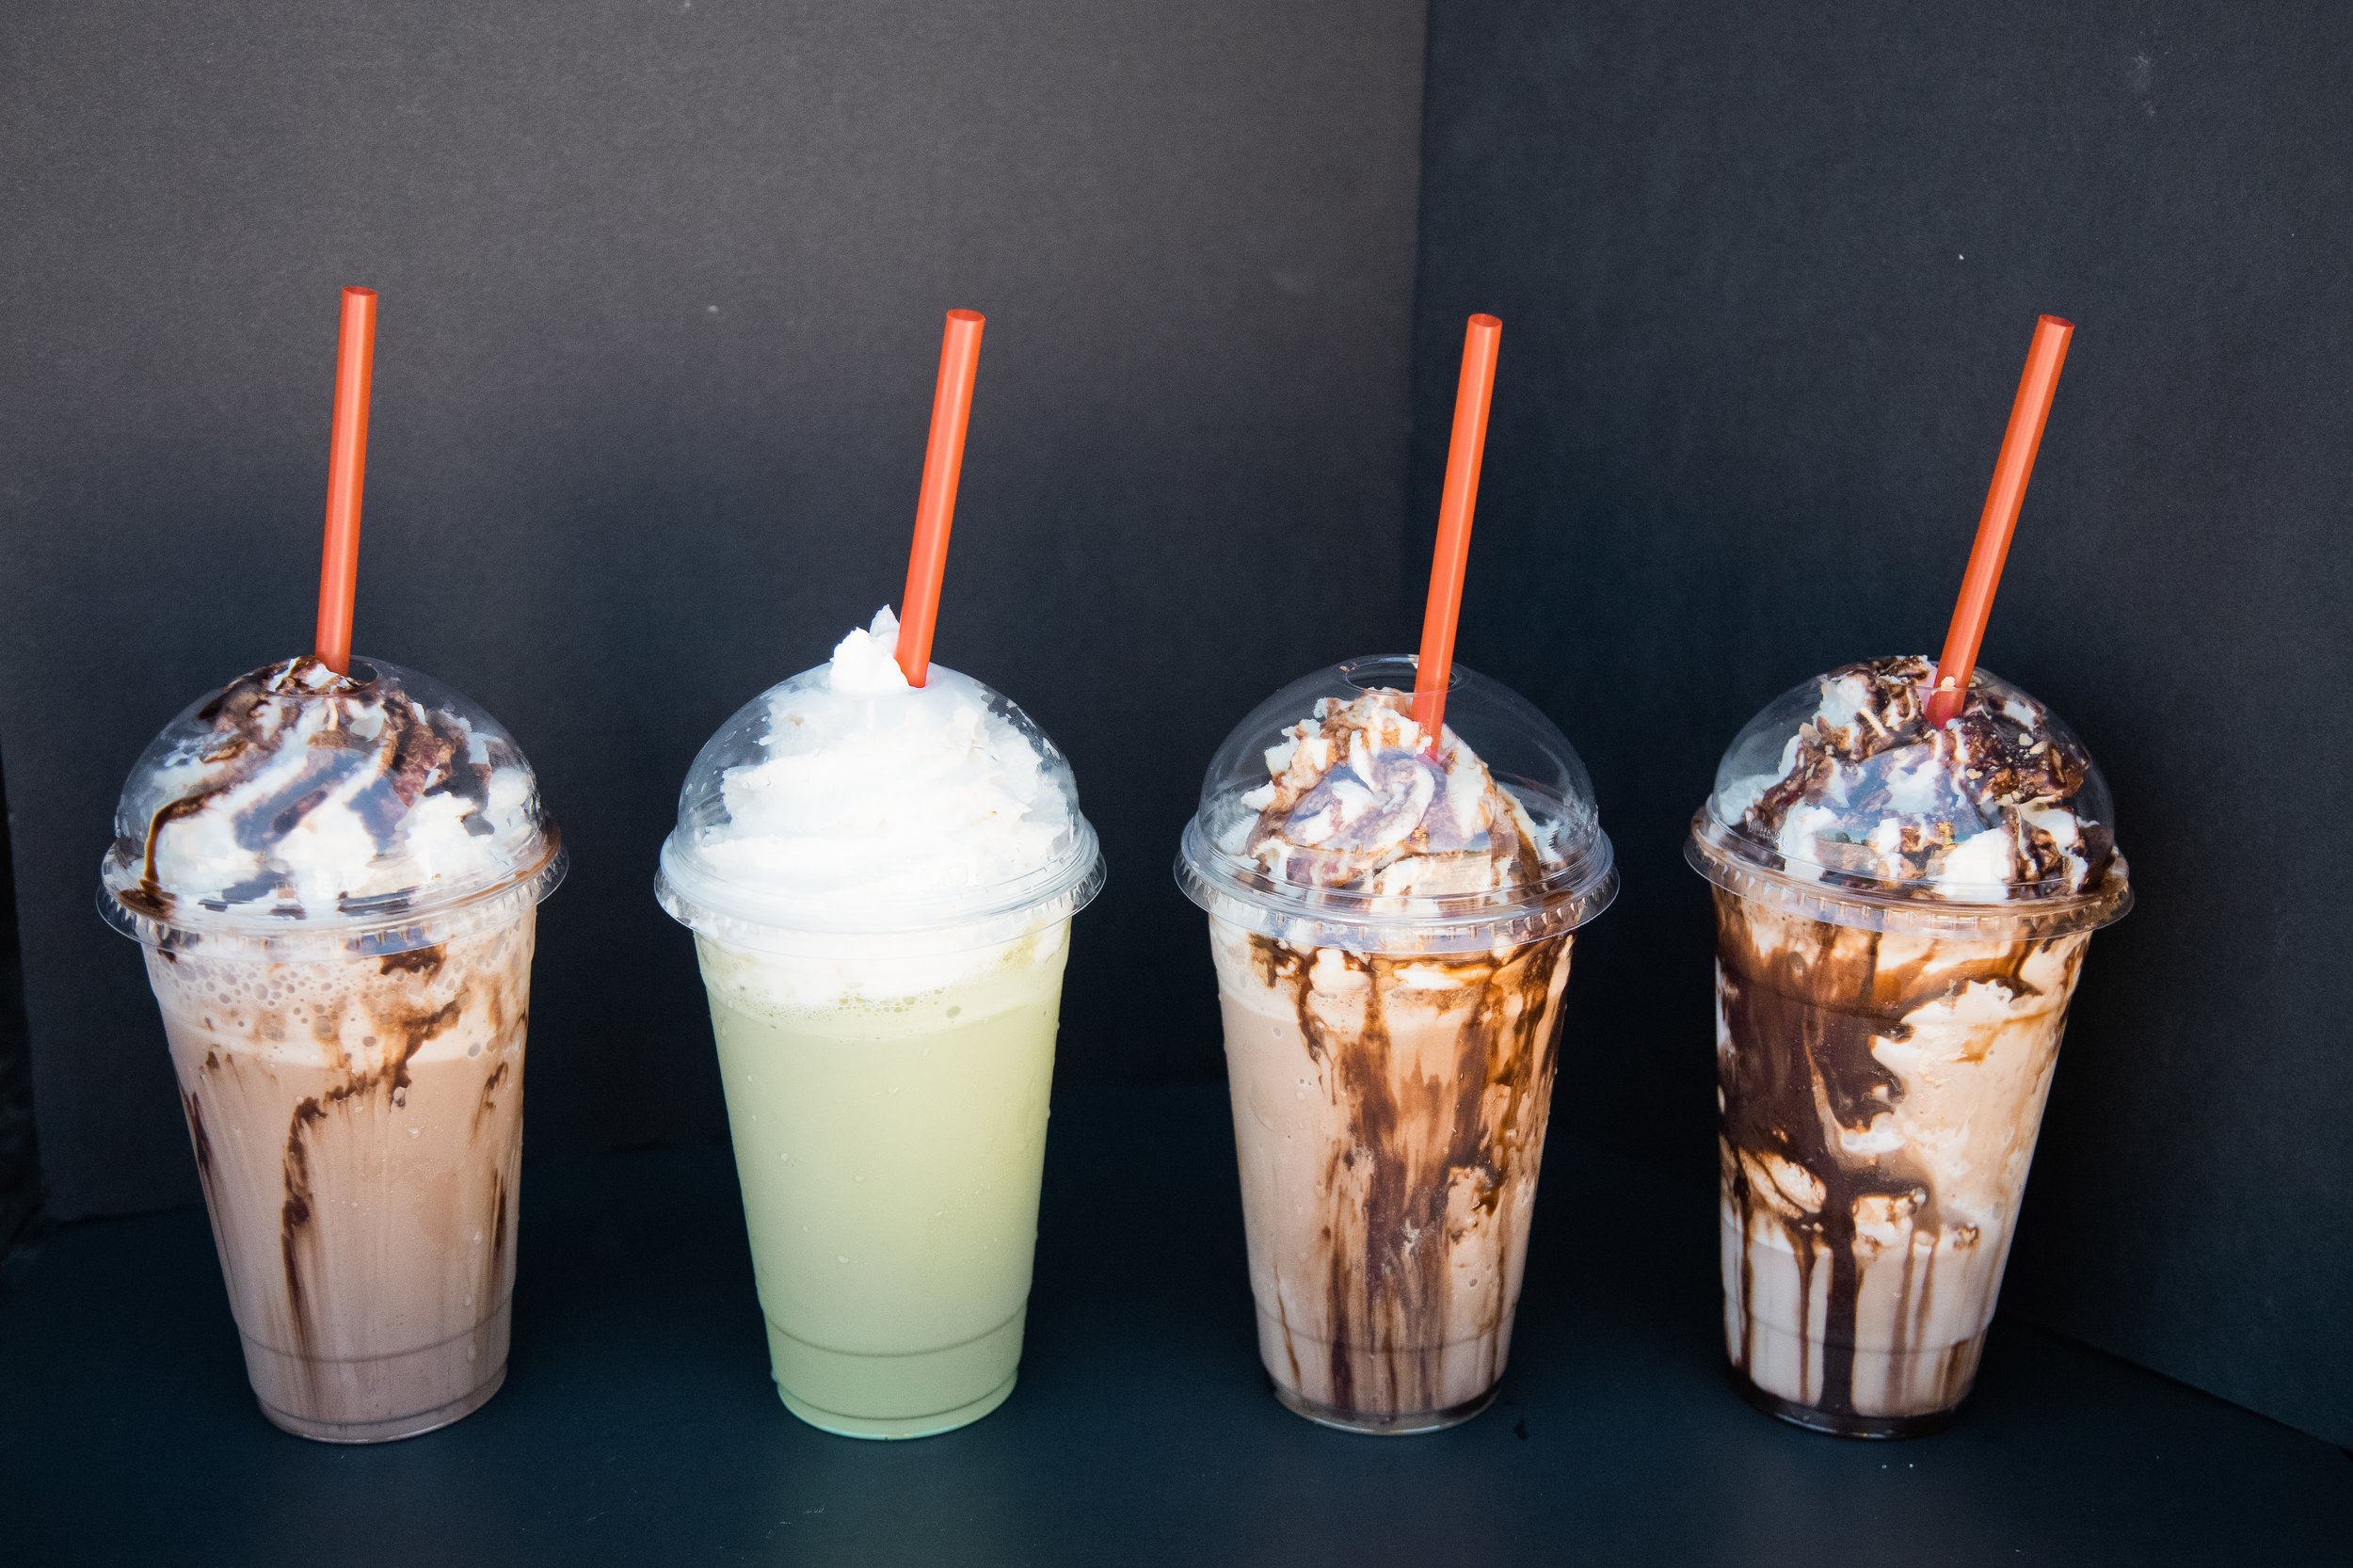 Frappes made with homemade whip!